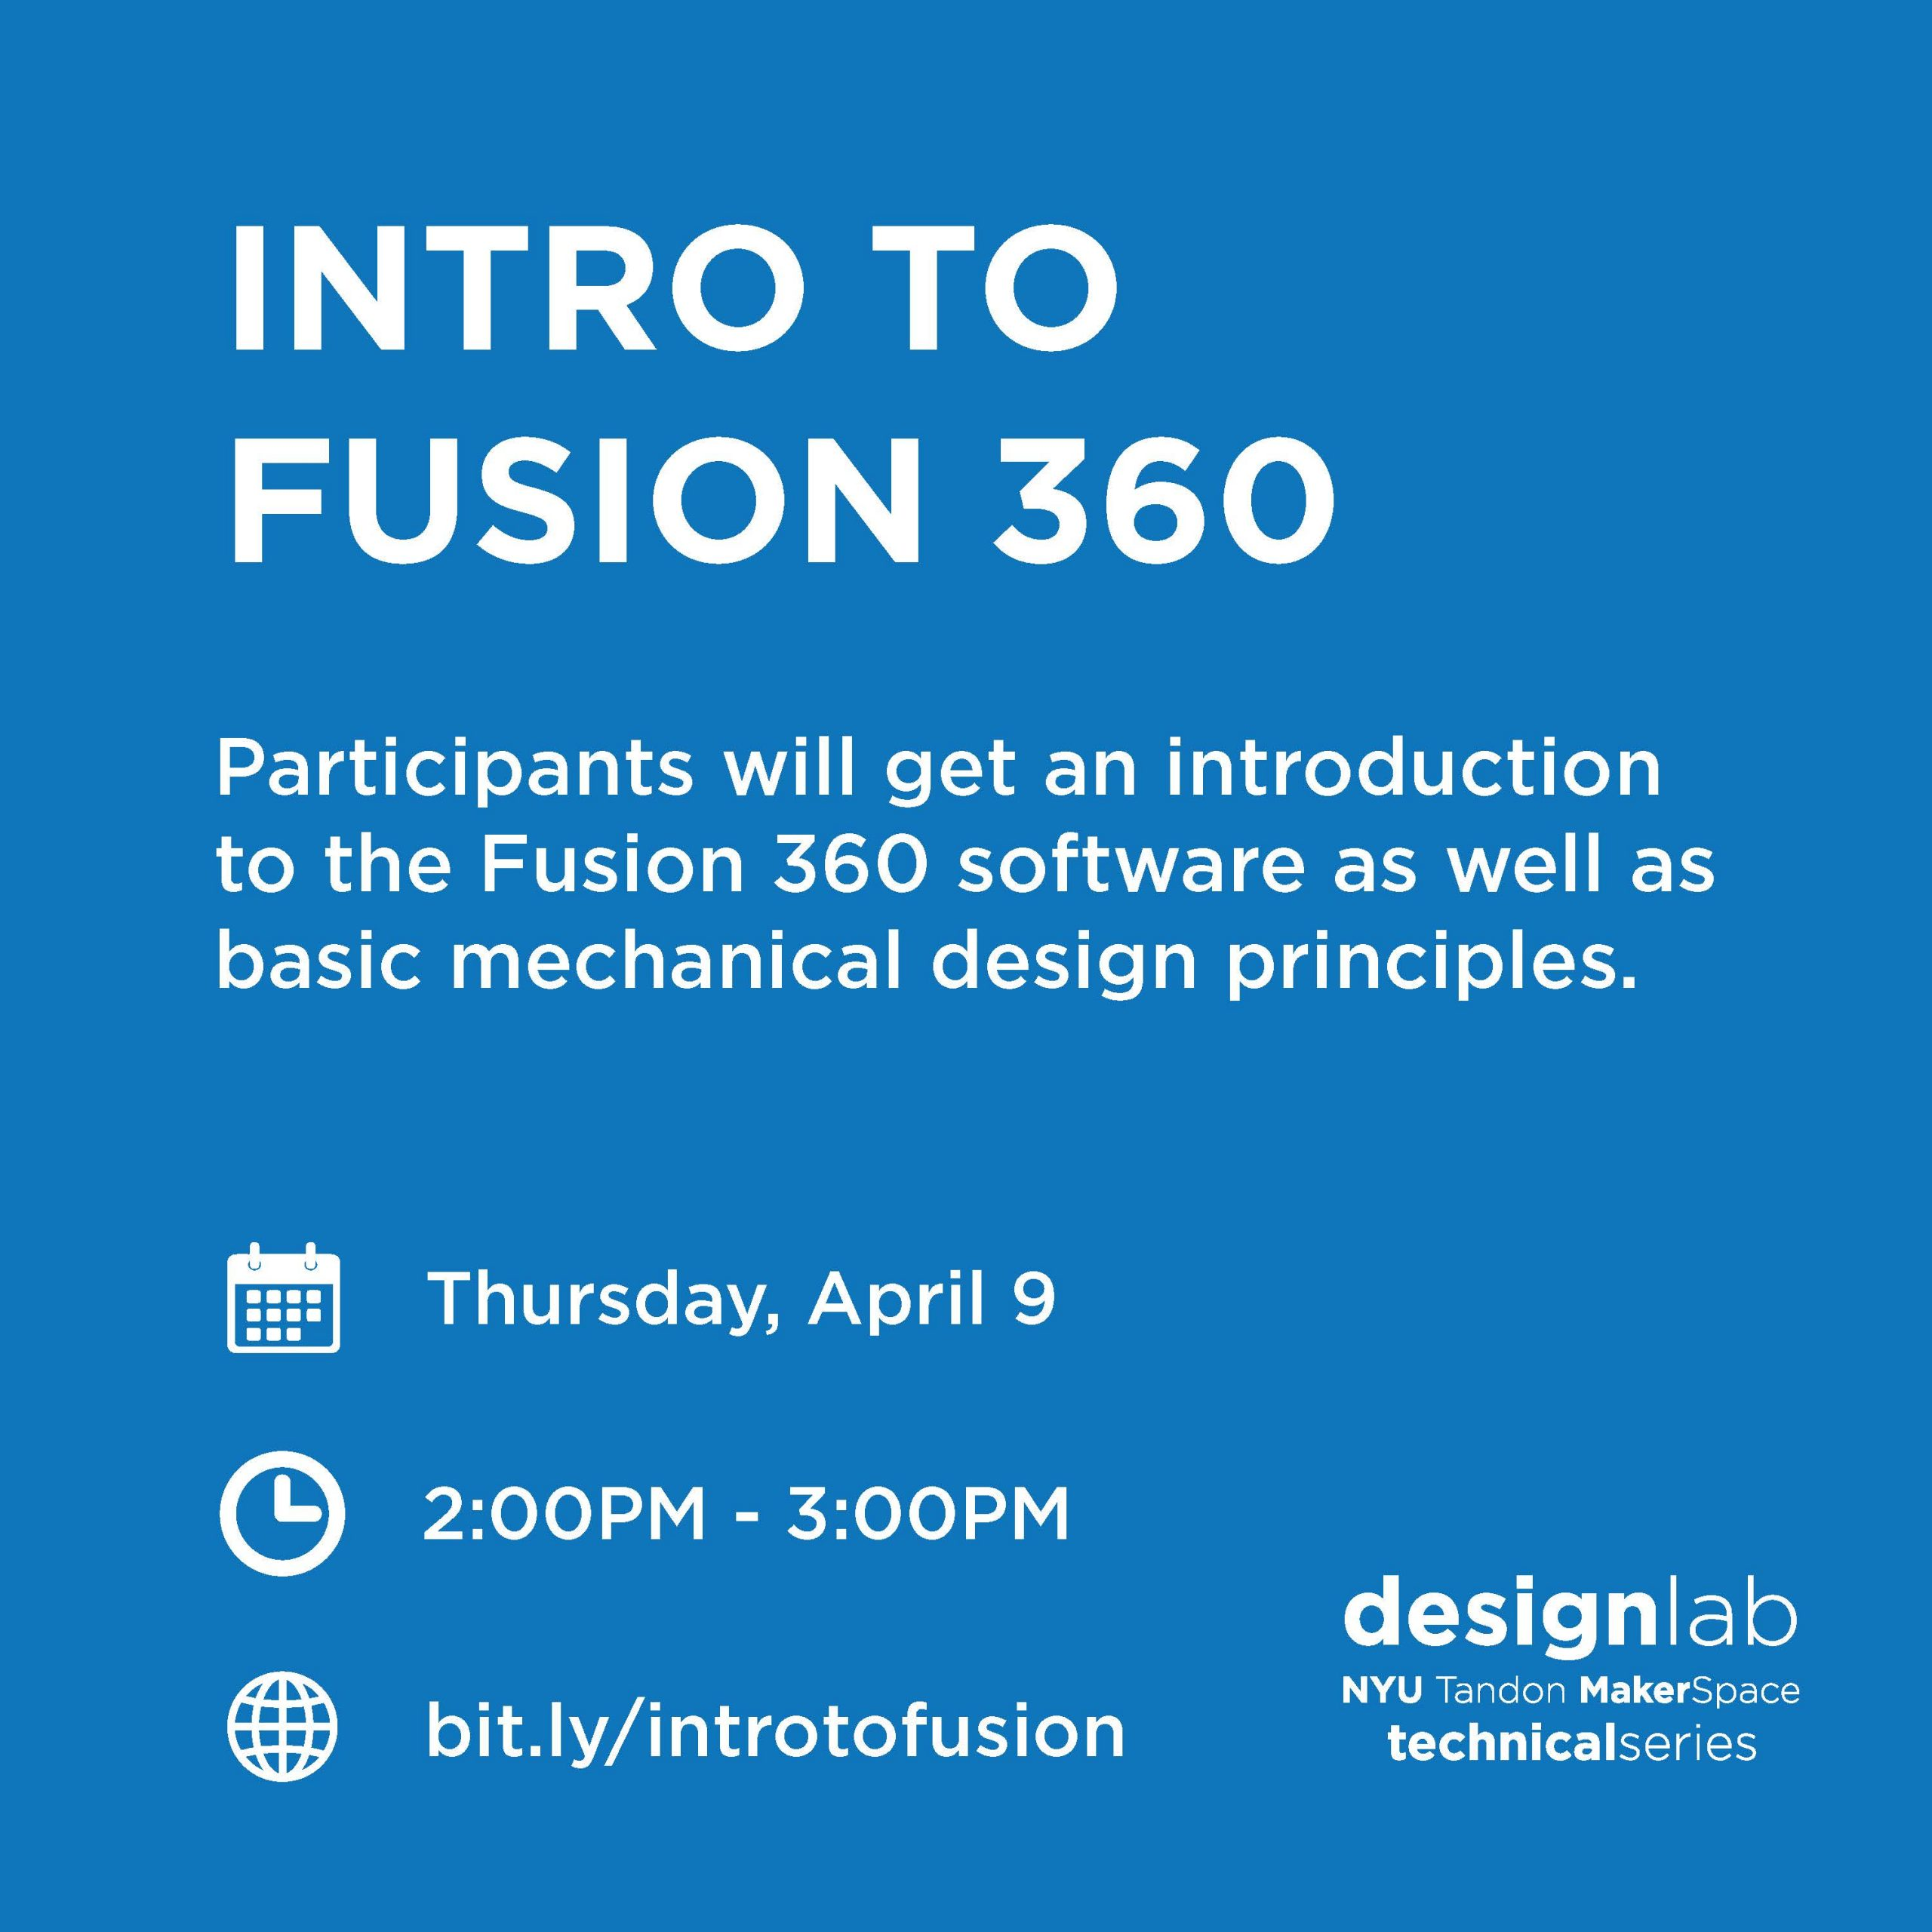 Intro to Fusion 360 Flyers_Page_2 (1)